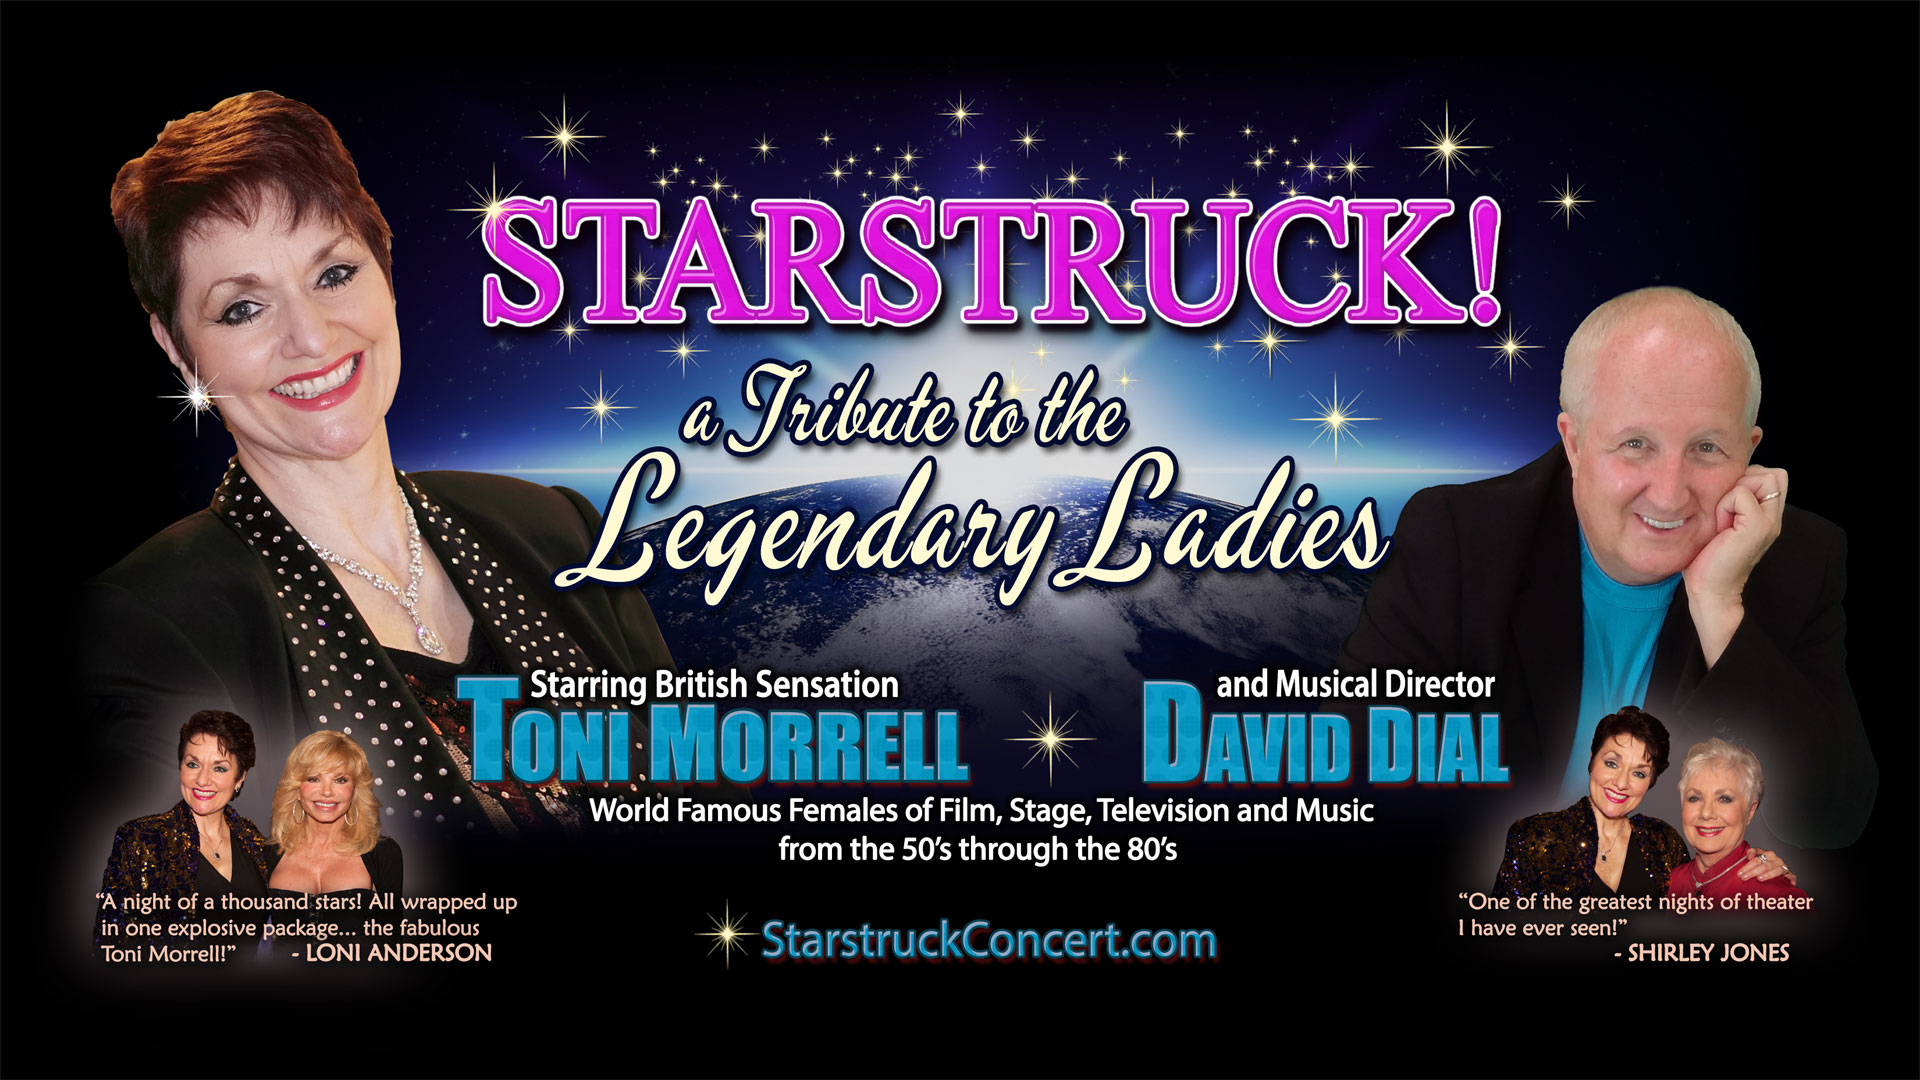 STARSTRUCK! A Tribute to the Legendary Ladies